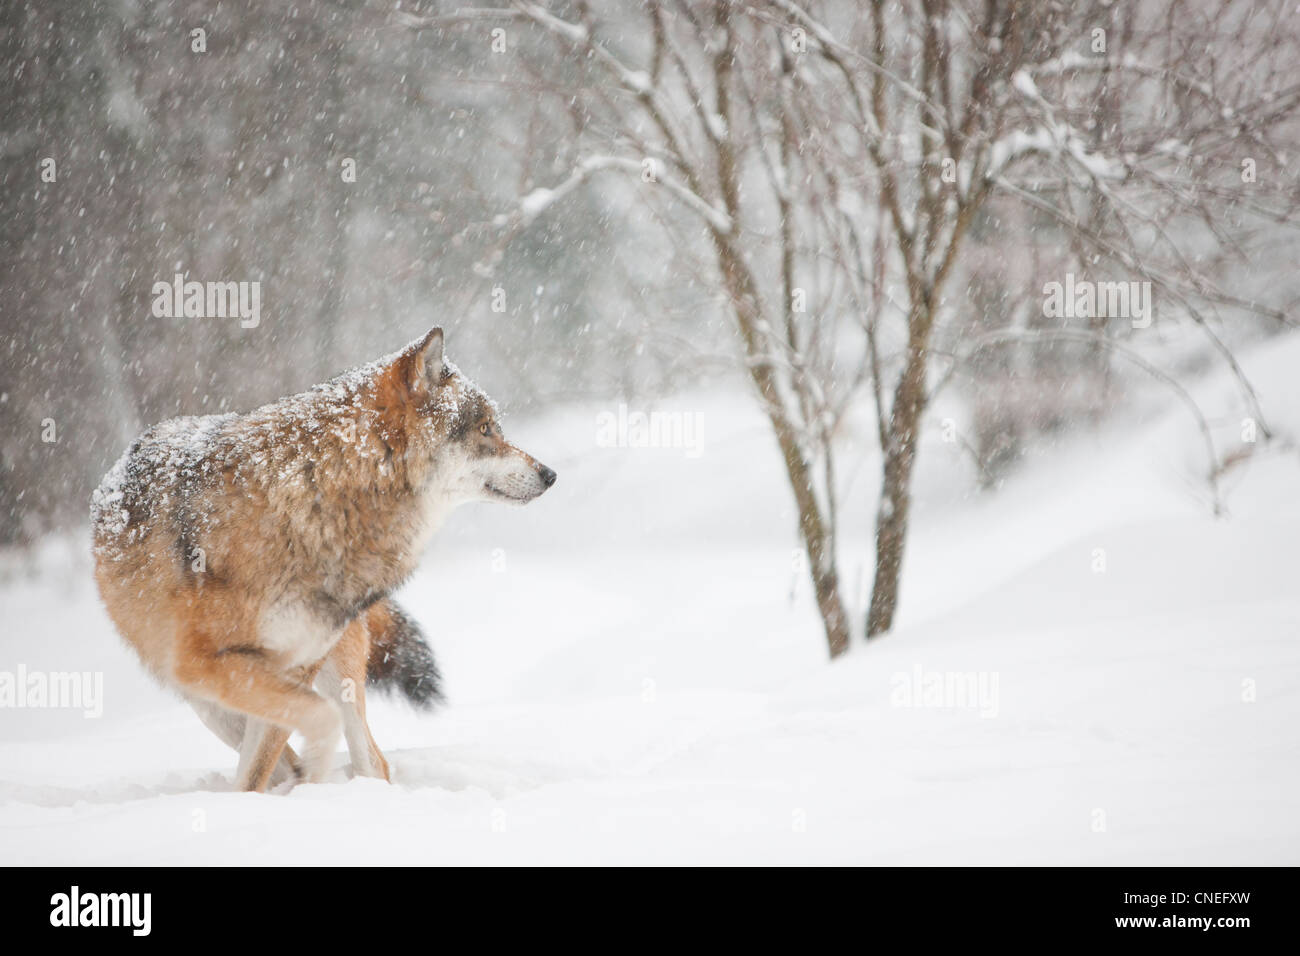 Wolf in snowy scenery - Stock Image